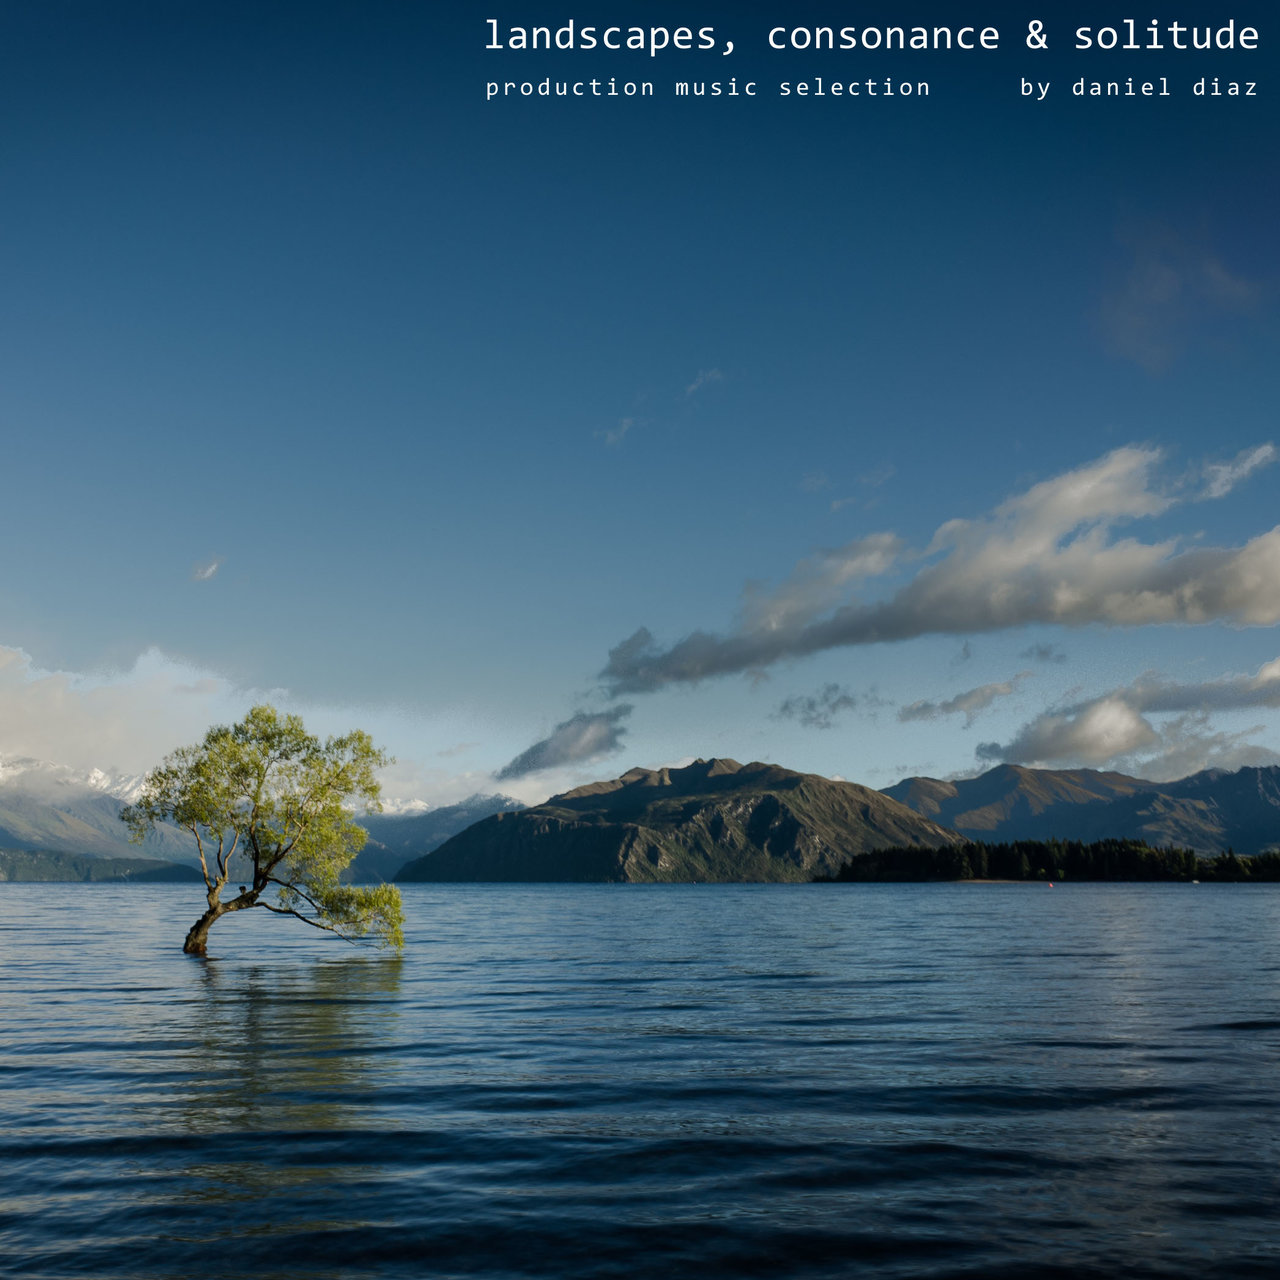 Landscapes, Consonance & Solitude